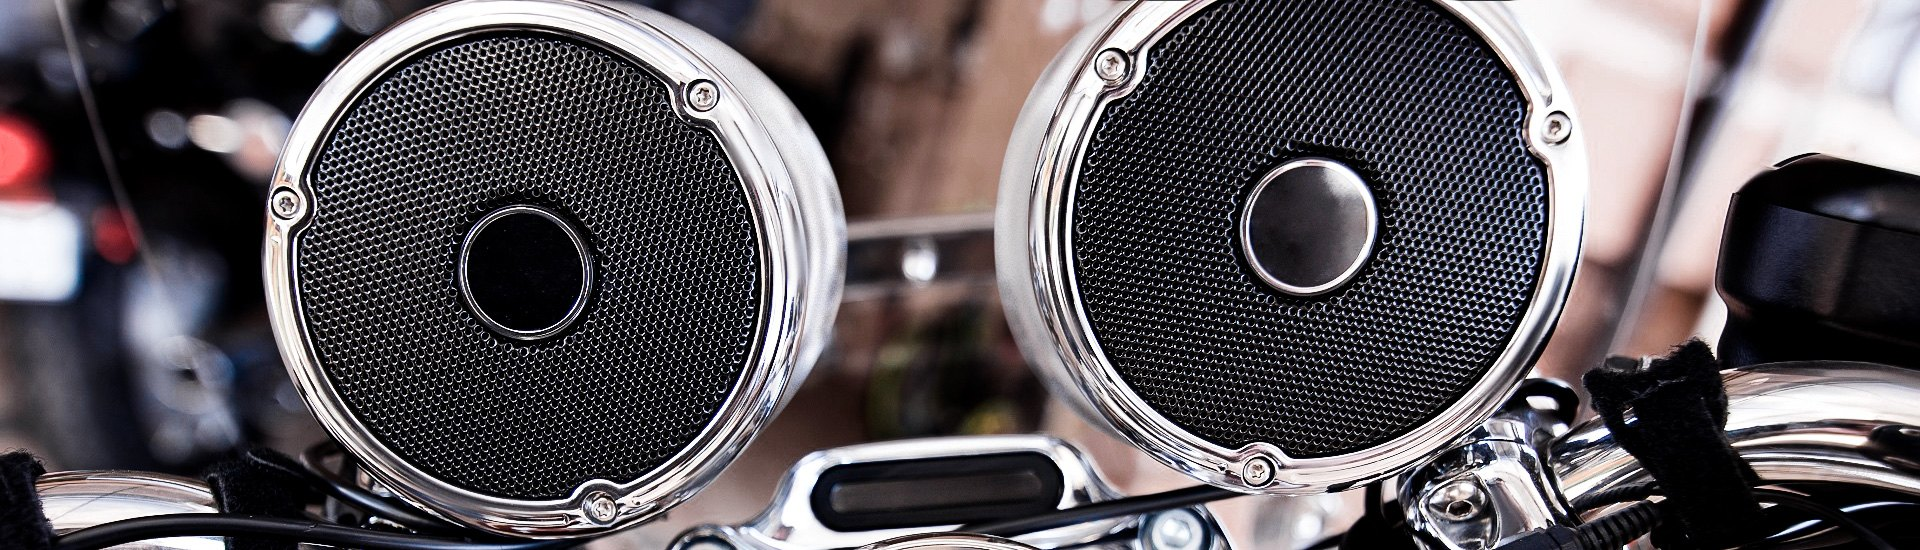 Motorcycle Sound Systems